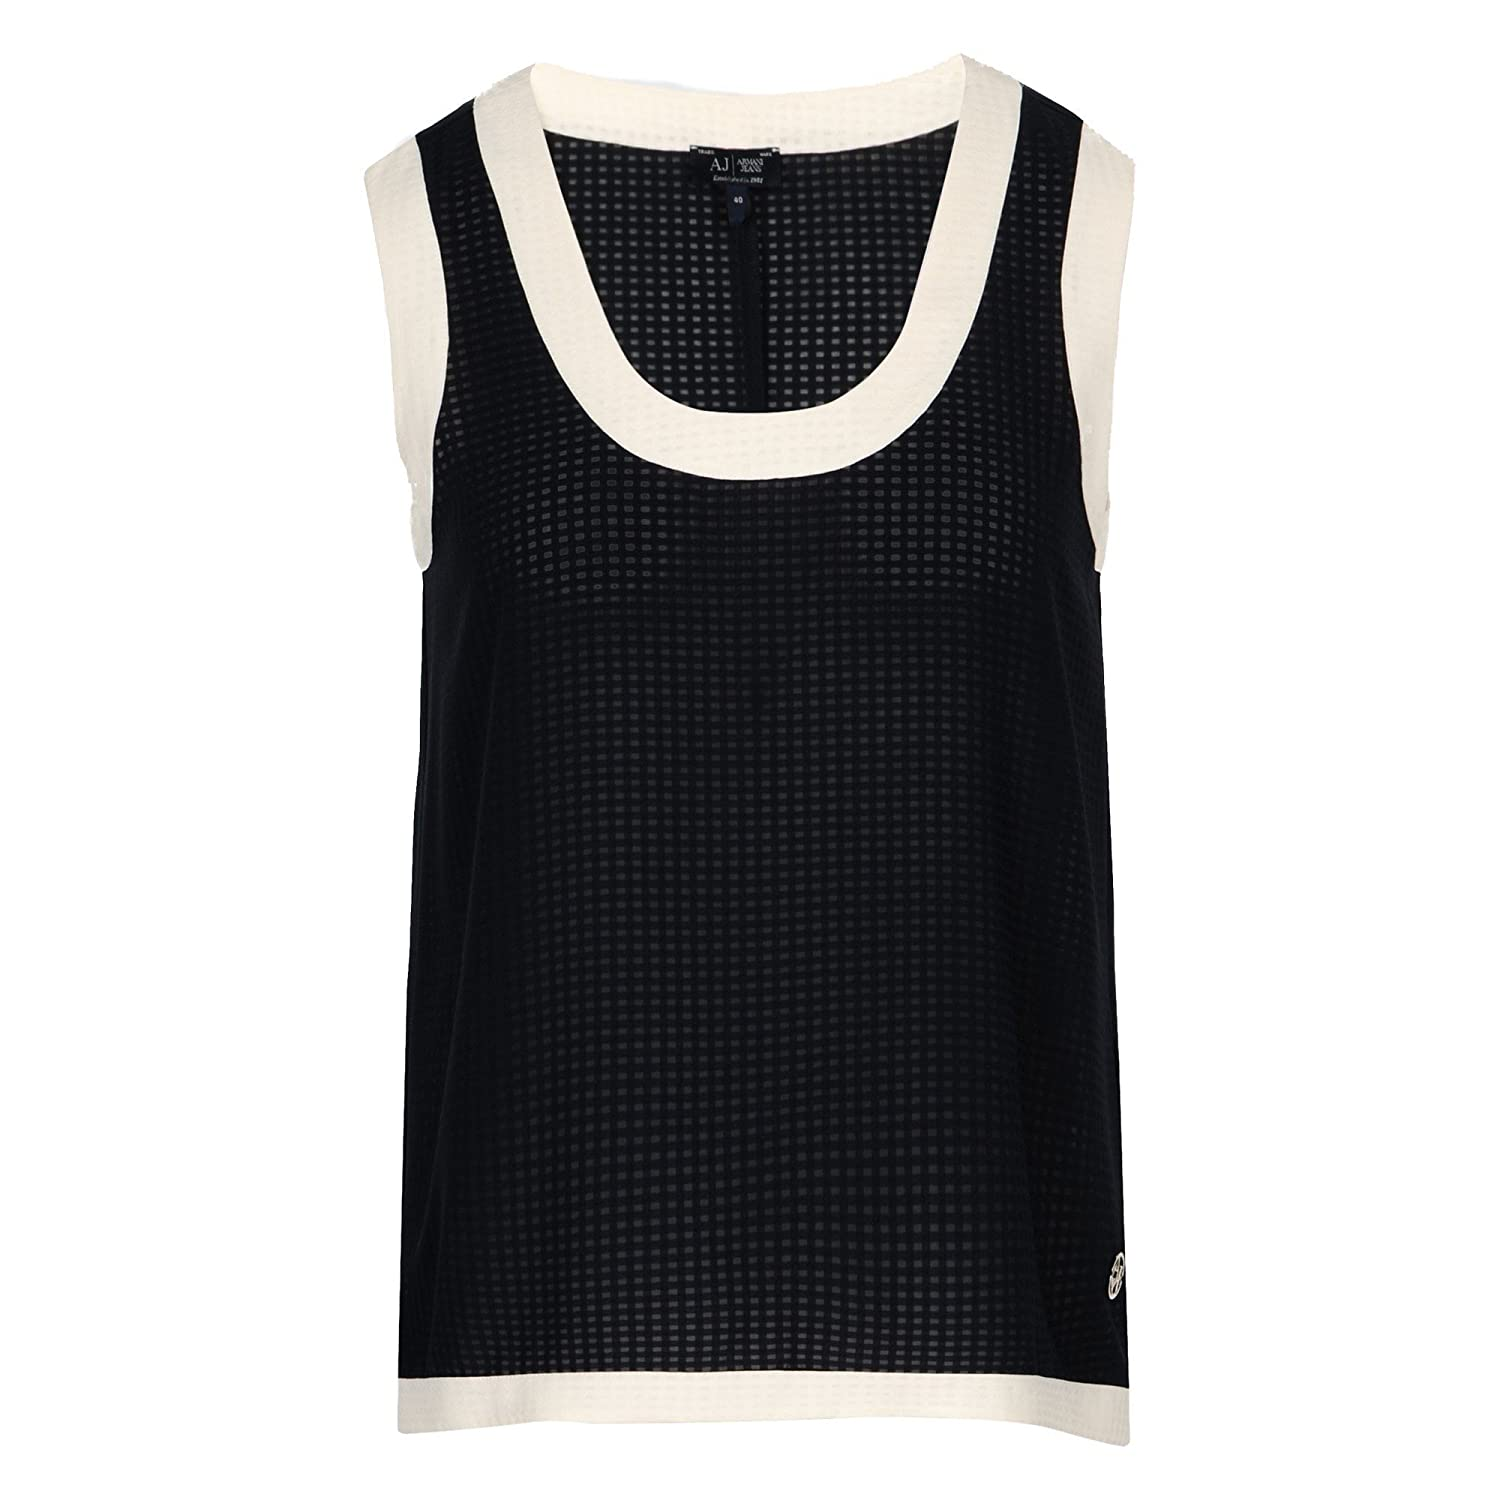 Armani Jeans top - (F-13-To-39998)